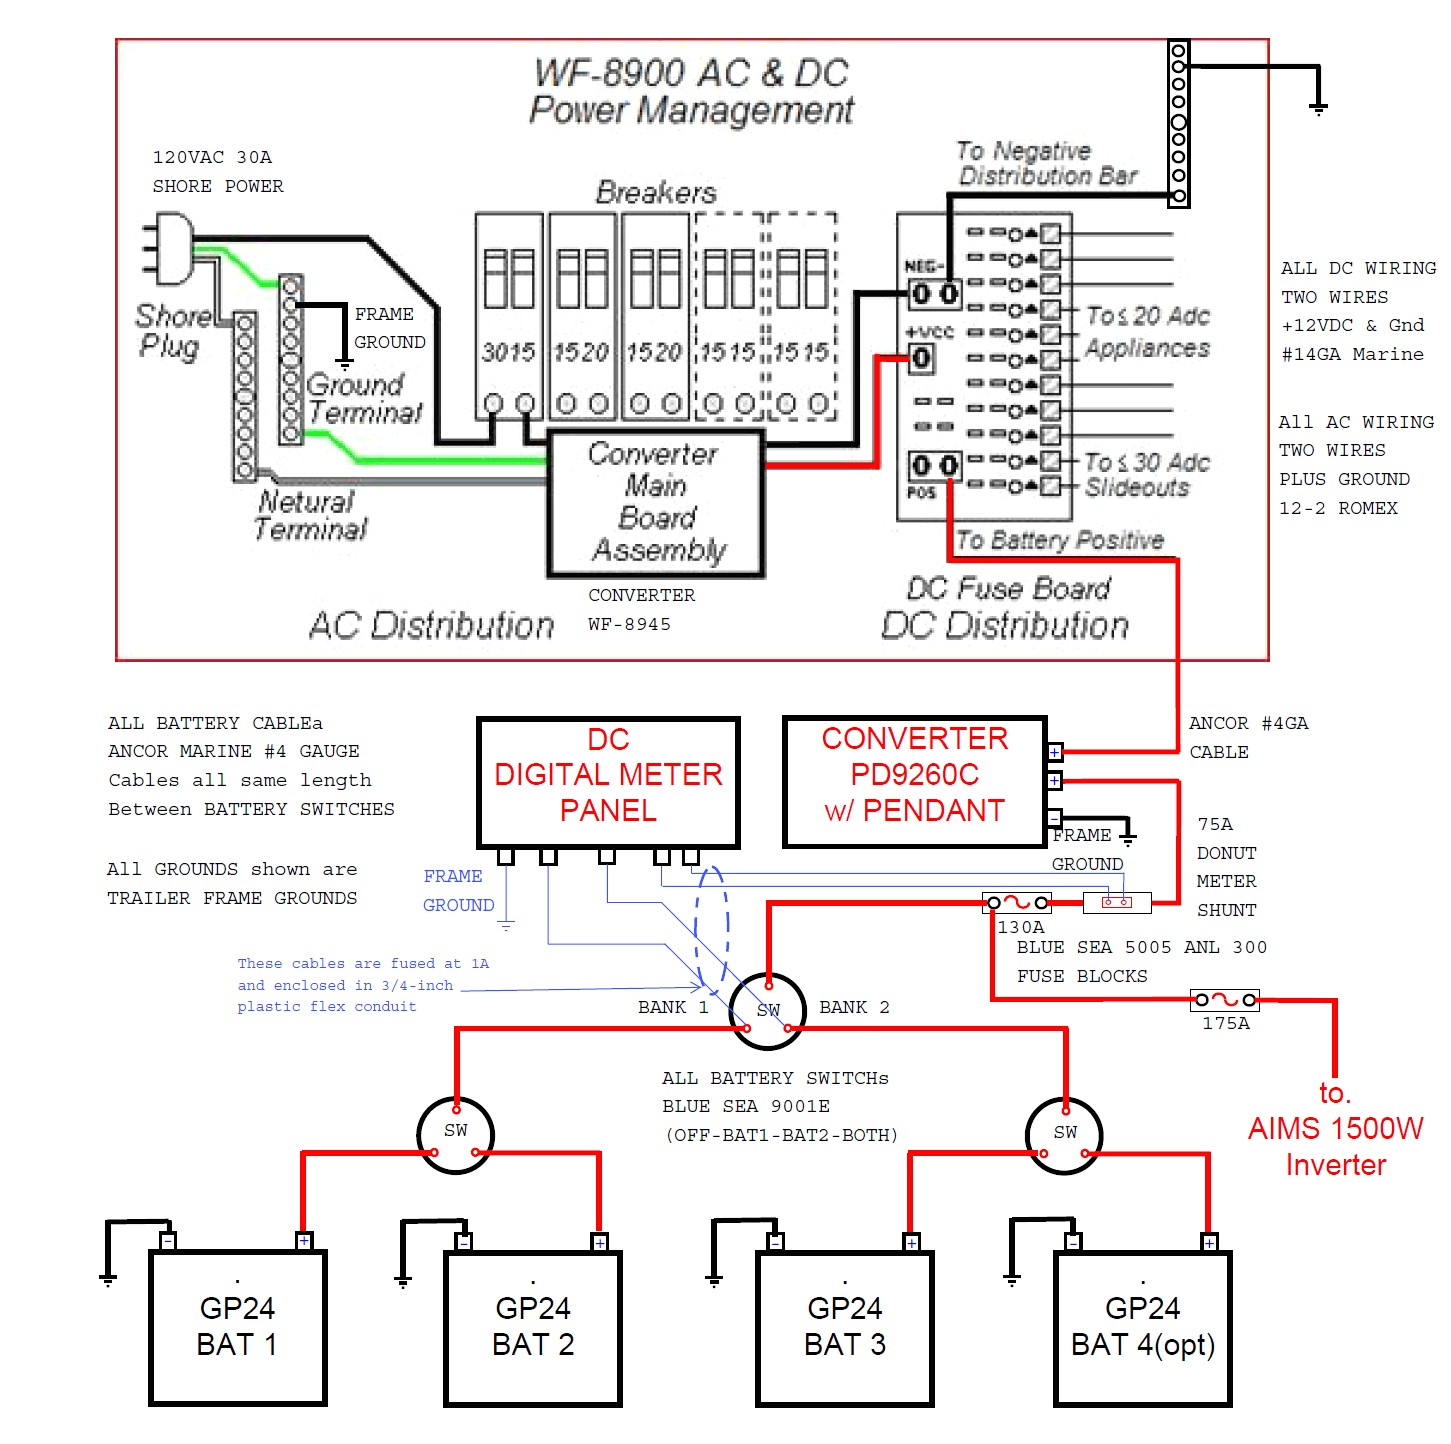 Switch panel wiring diagram bep map of the united states creating a bep switch panel wiring diagram wiring diagrams schematics battery disconnect switch wiring diagram best of boat batterych wiring diagram patent us charger swarovskicordoba Gallery